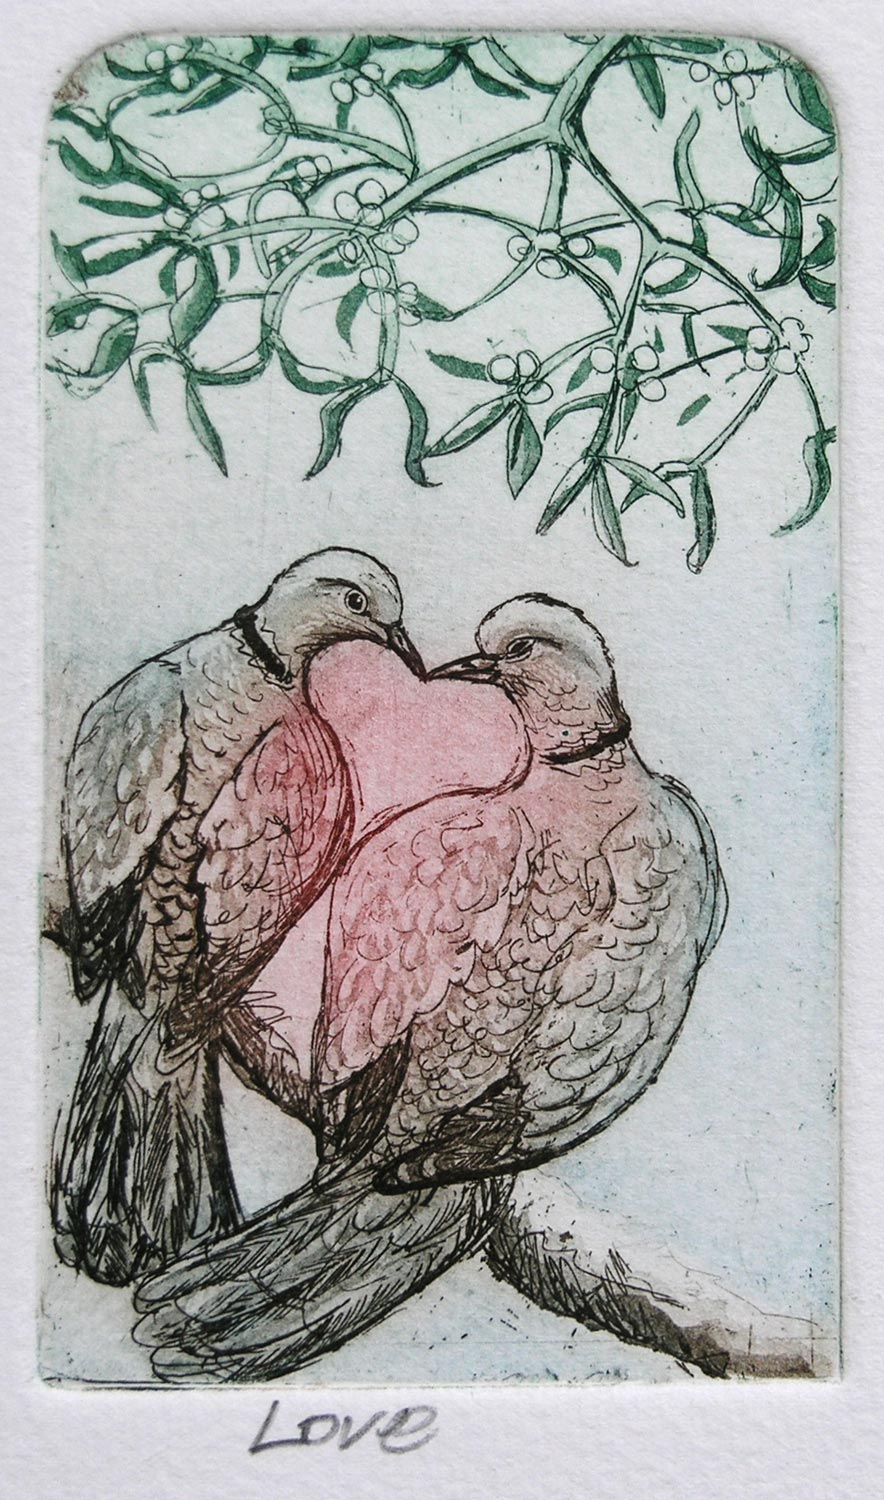 Love etching 20 x 18cm £44 (unframed)